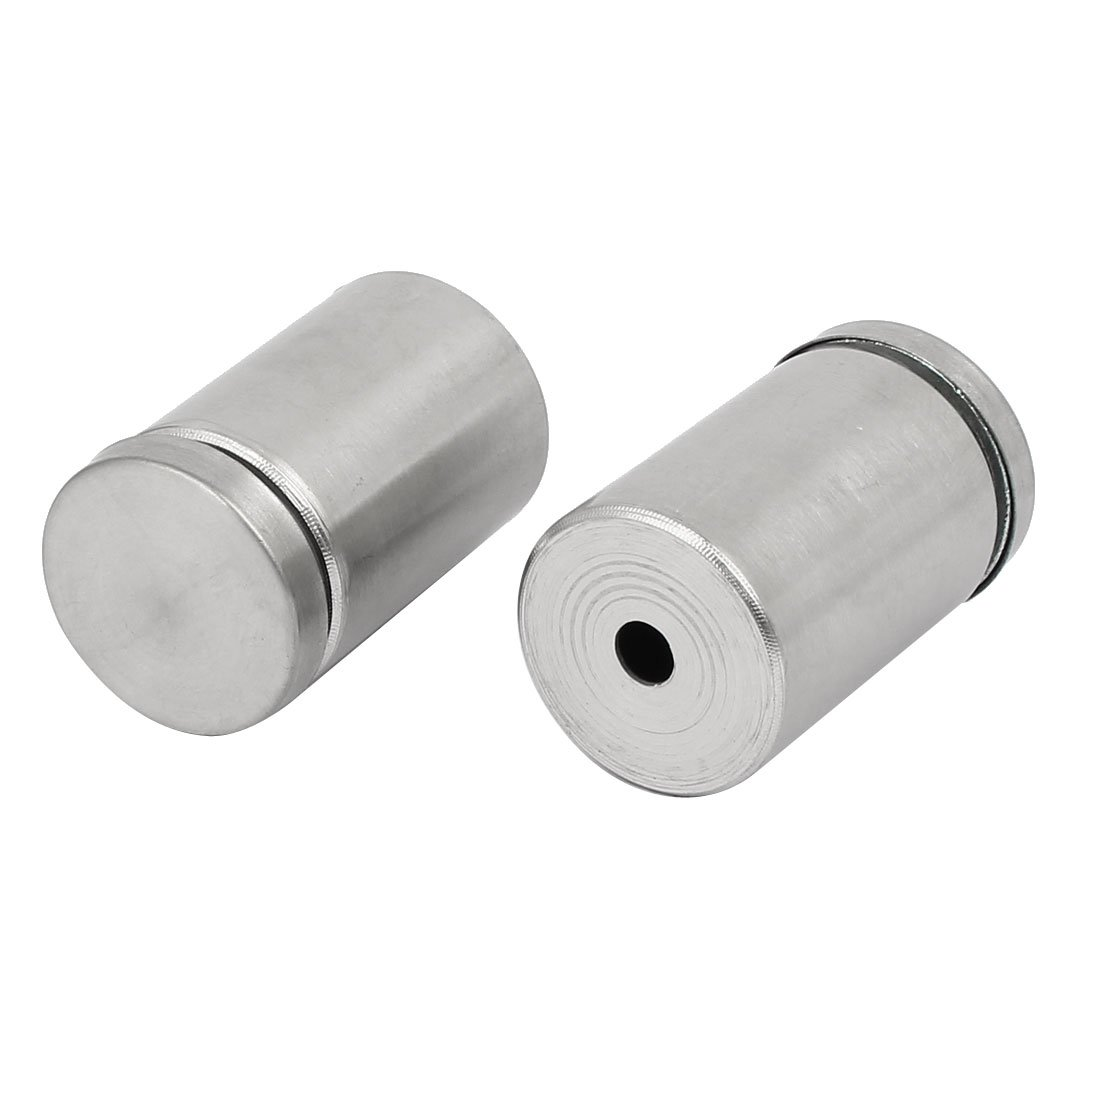 sourcing map M6 304 Stainless Steel U-Bolt Fastener for 76mm Pipe Diameter 5pcs